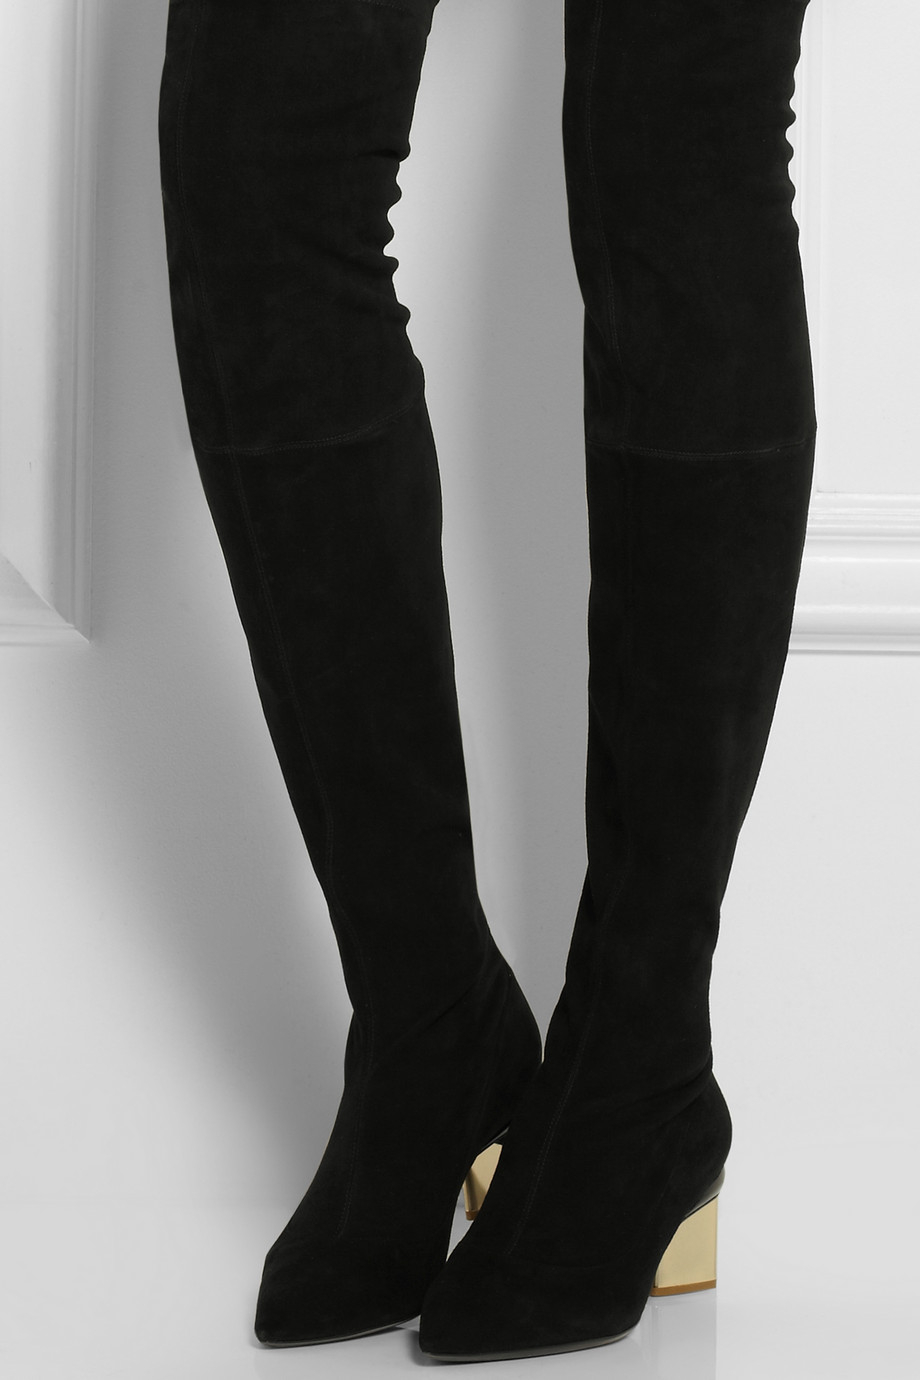 Nicholas kirkwood Stretch-Suede Over-The-Knee Boots in Black | Lyst